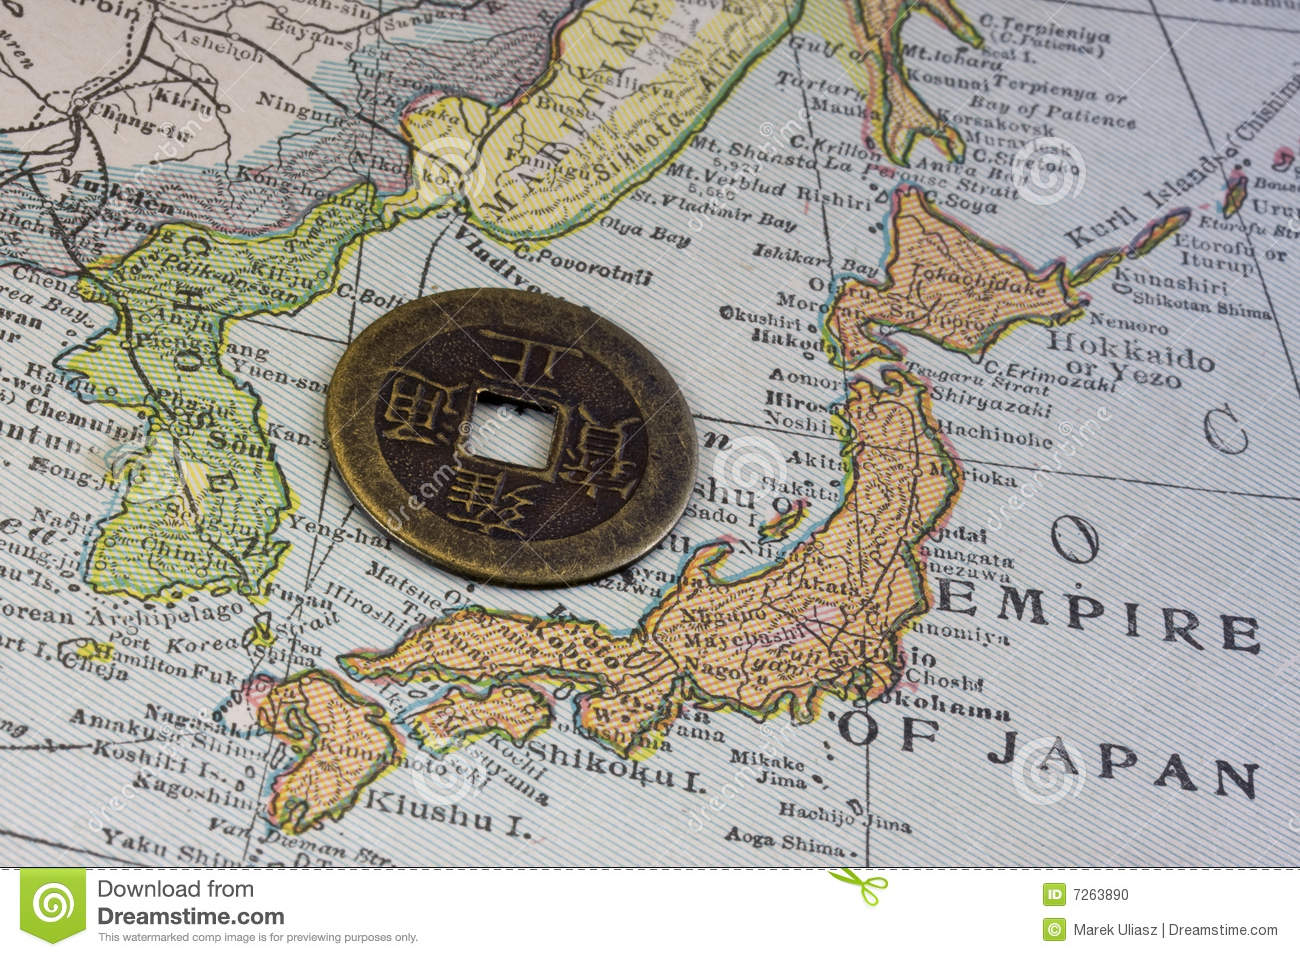 Japan on vintage map and old coin